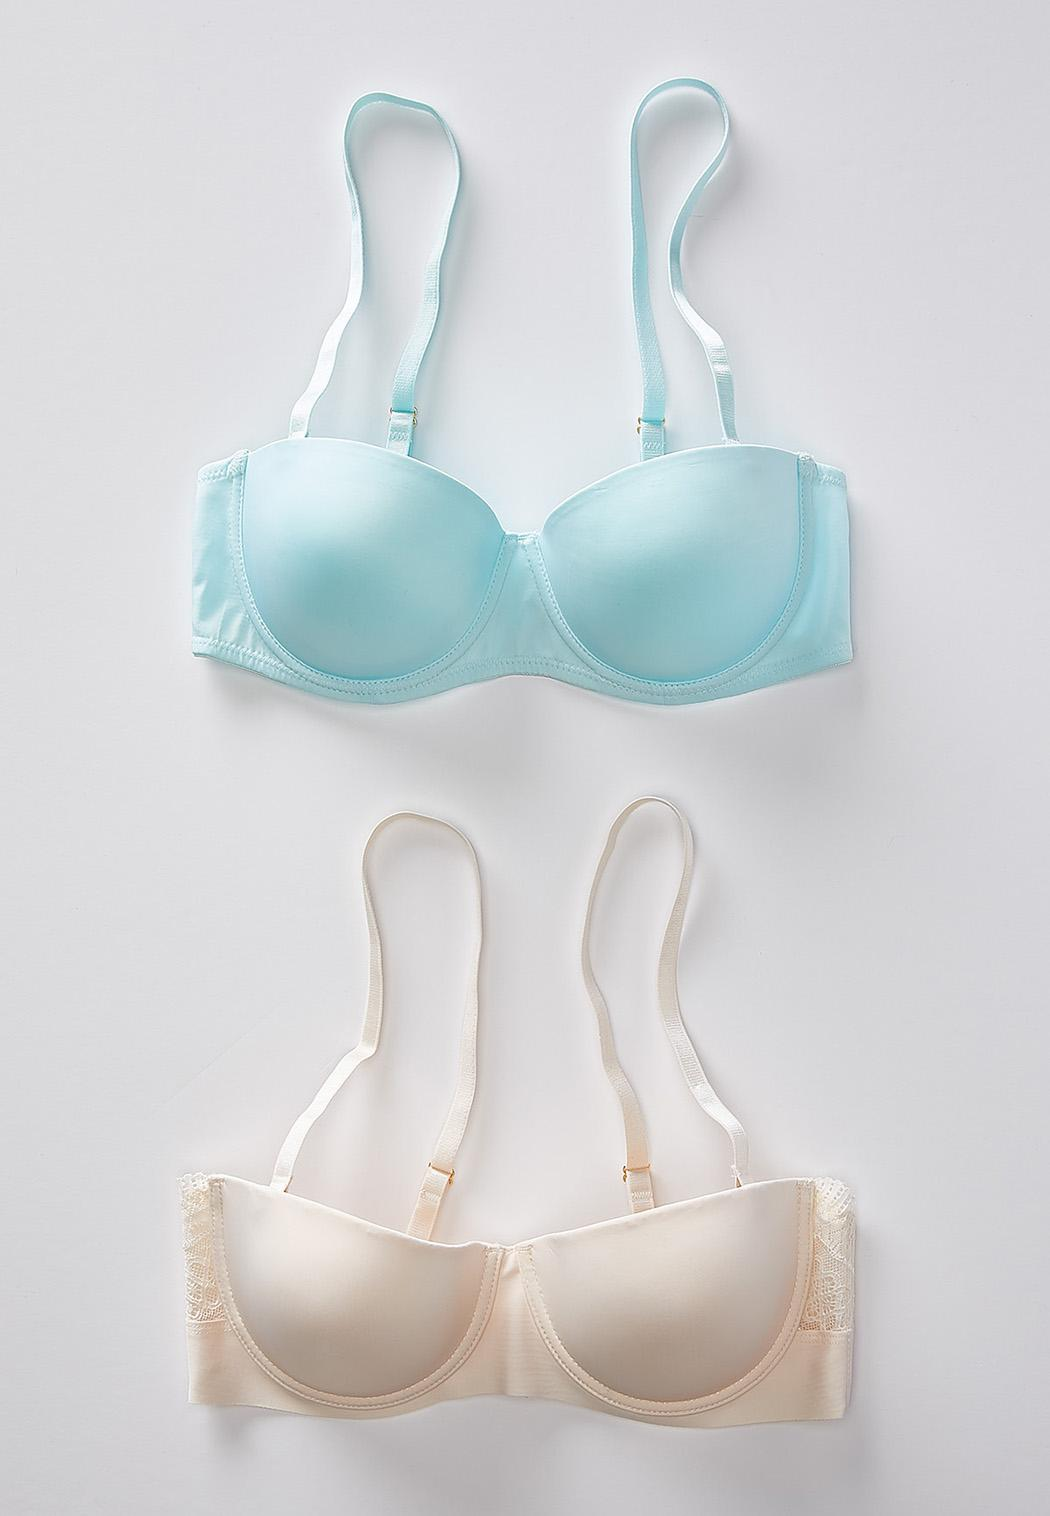 5d05db5e6f Plus Size Ivory And Aqua Convertible Bra Set Bras Cato Fashions